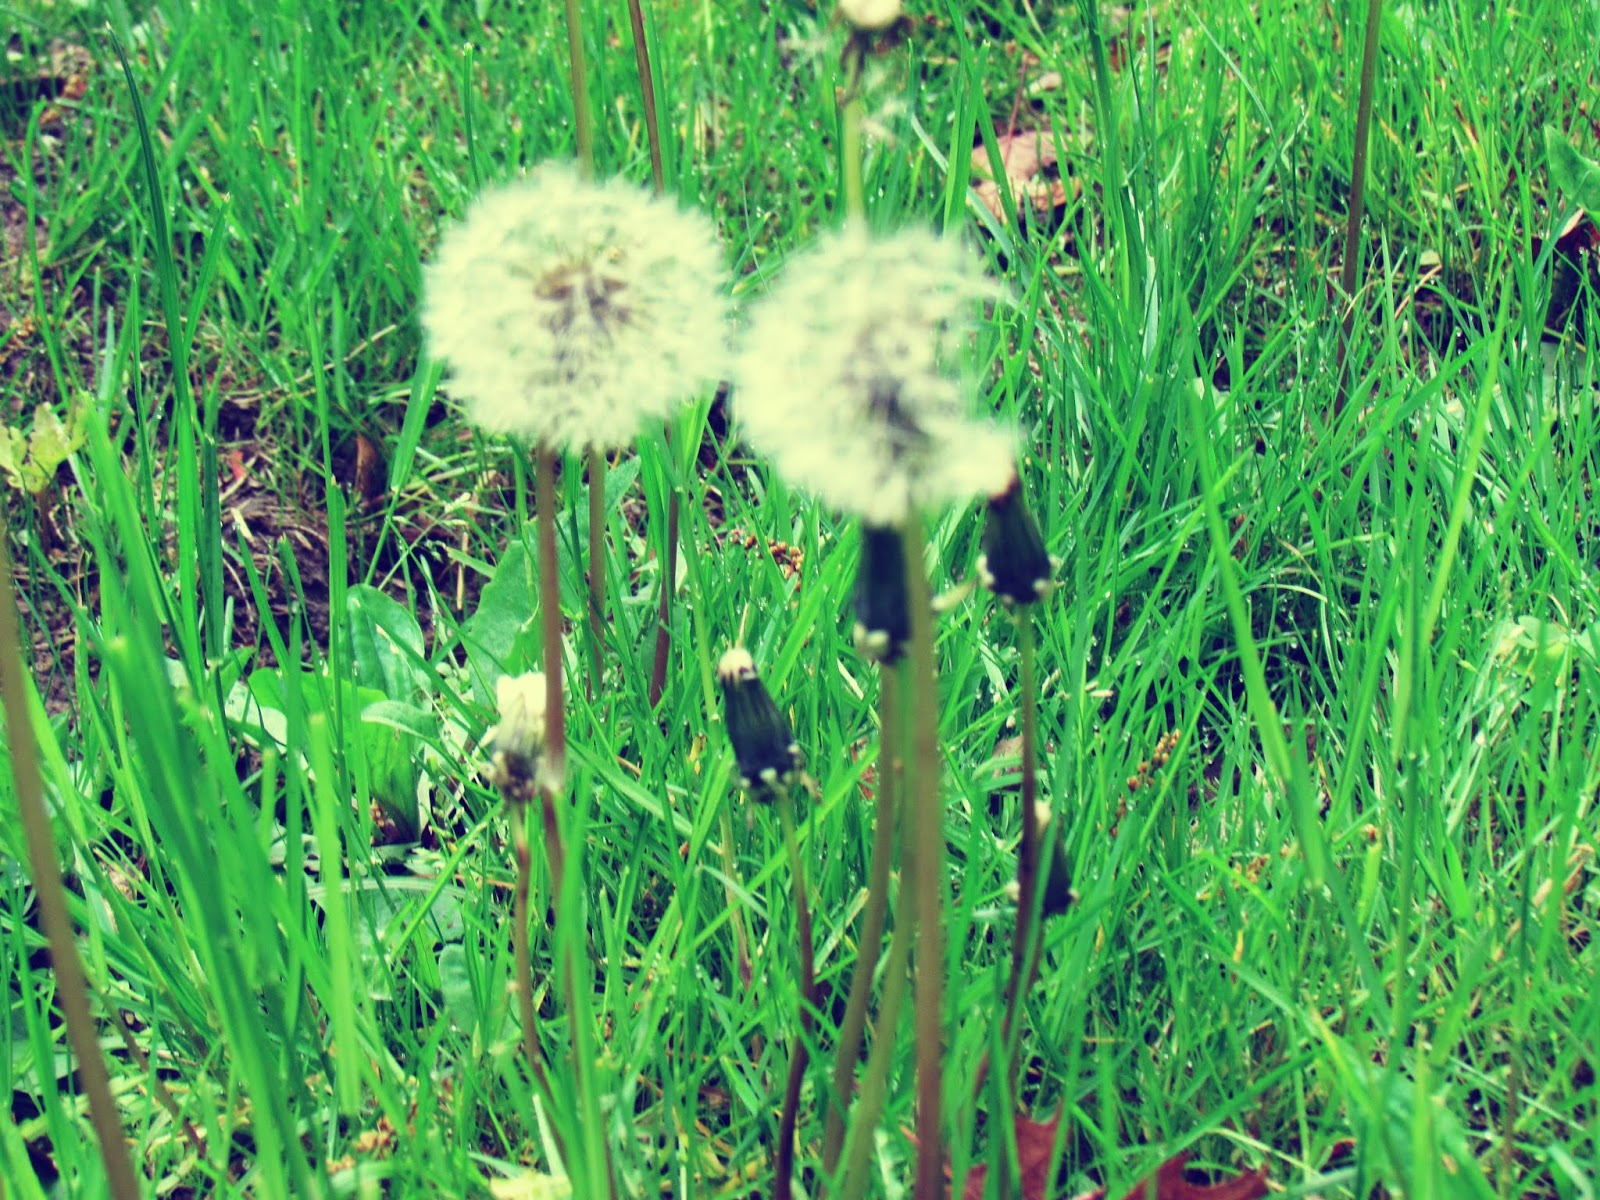 A Pair of Dandelions Blowing in the Wind Spreading Wishes Throughout Planet Earth